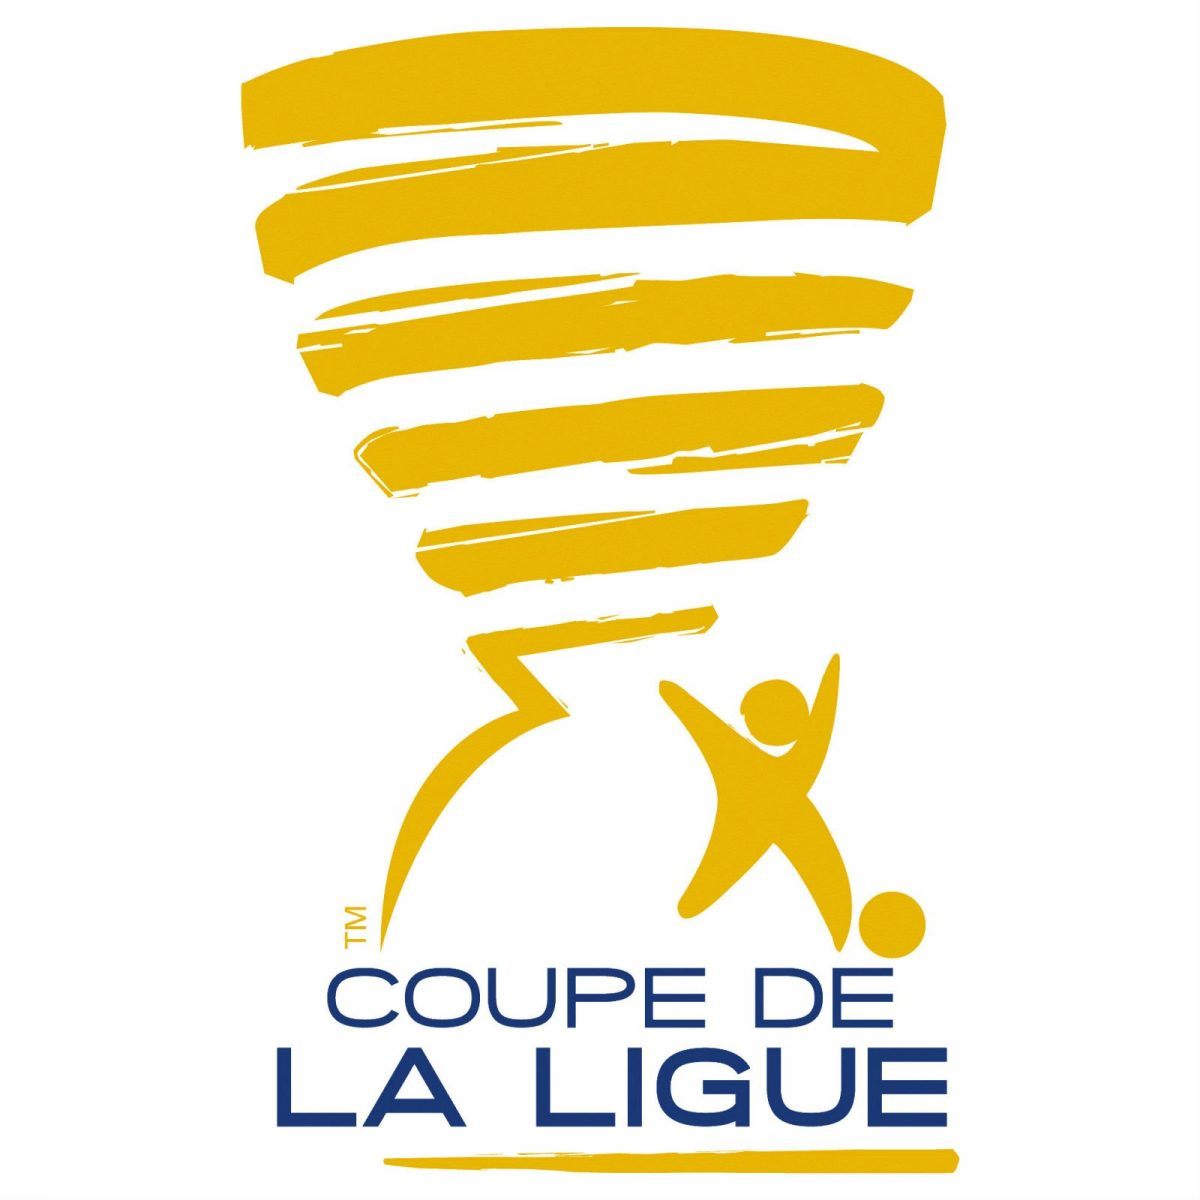 1er tour coup de la ligue 2013 tirage au sort des premiers matchs - Coupe de france en direct france 2 ...